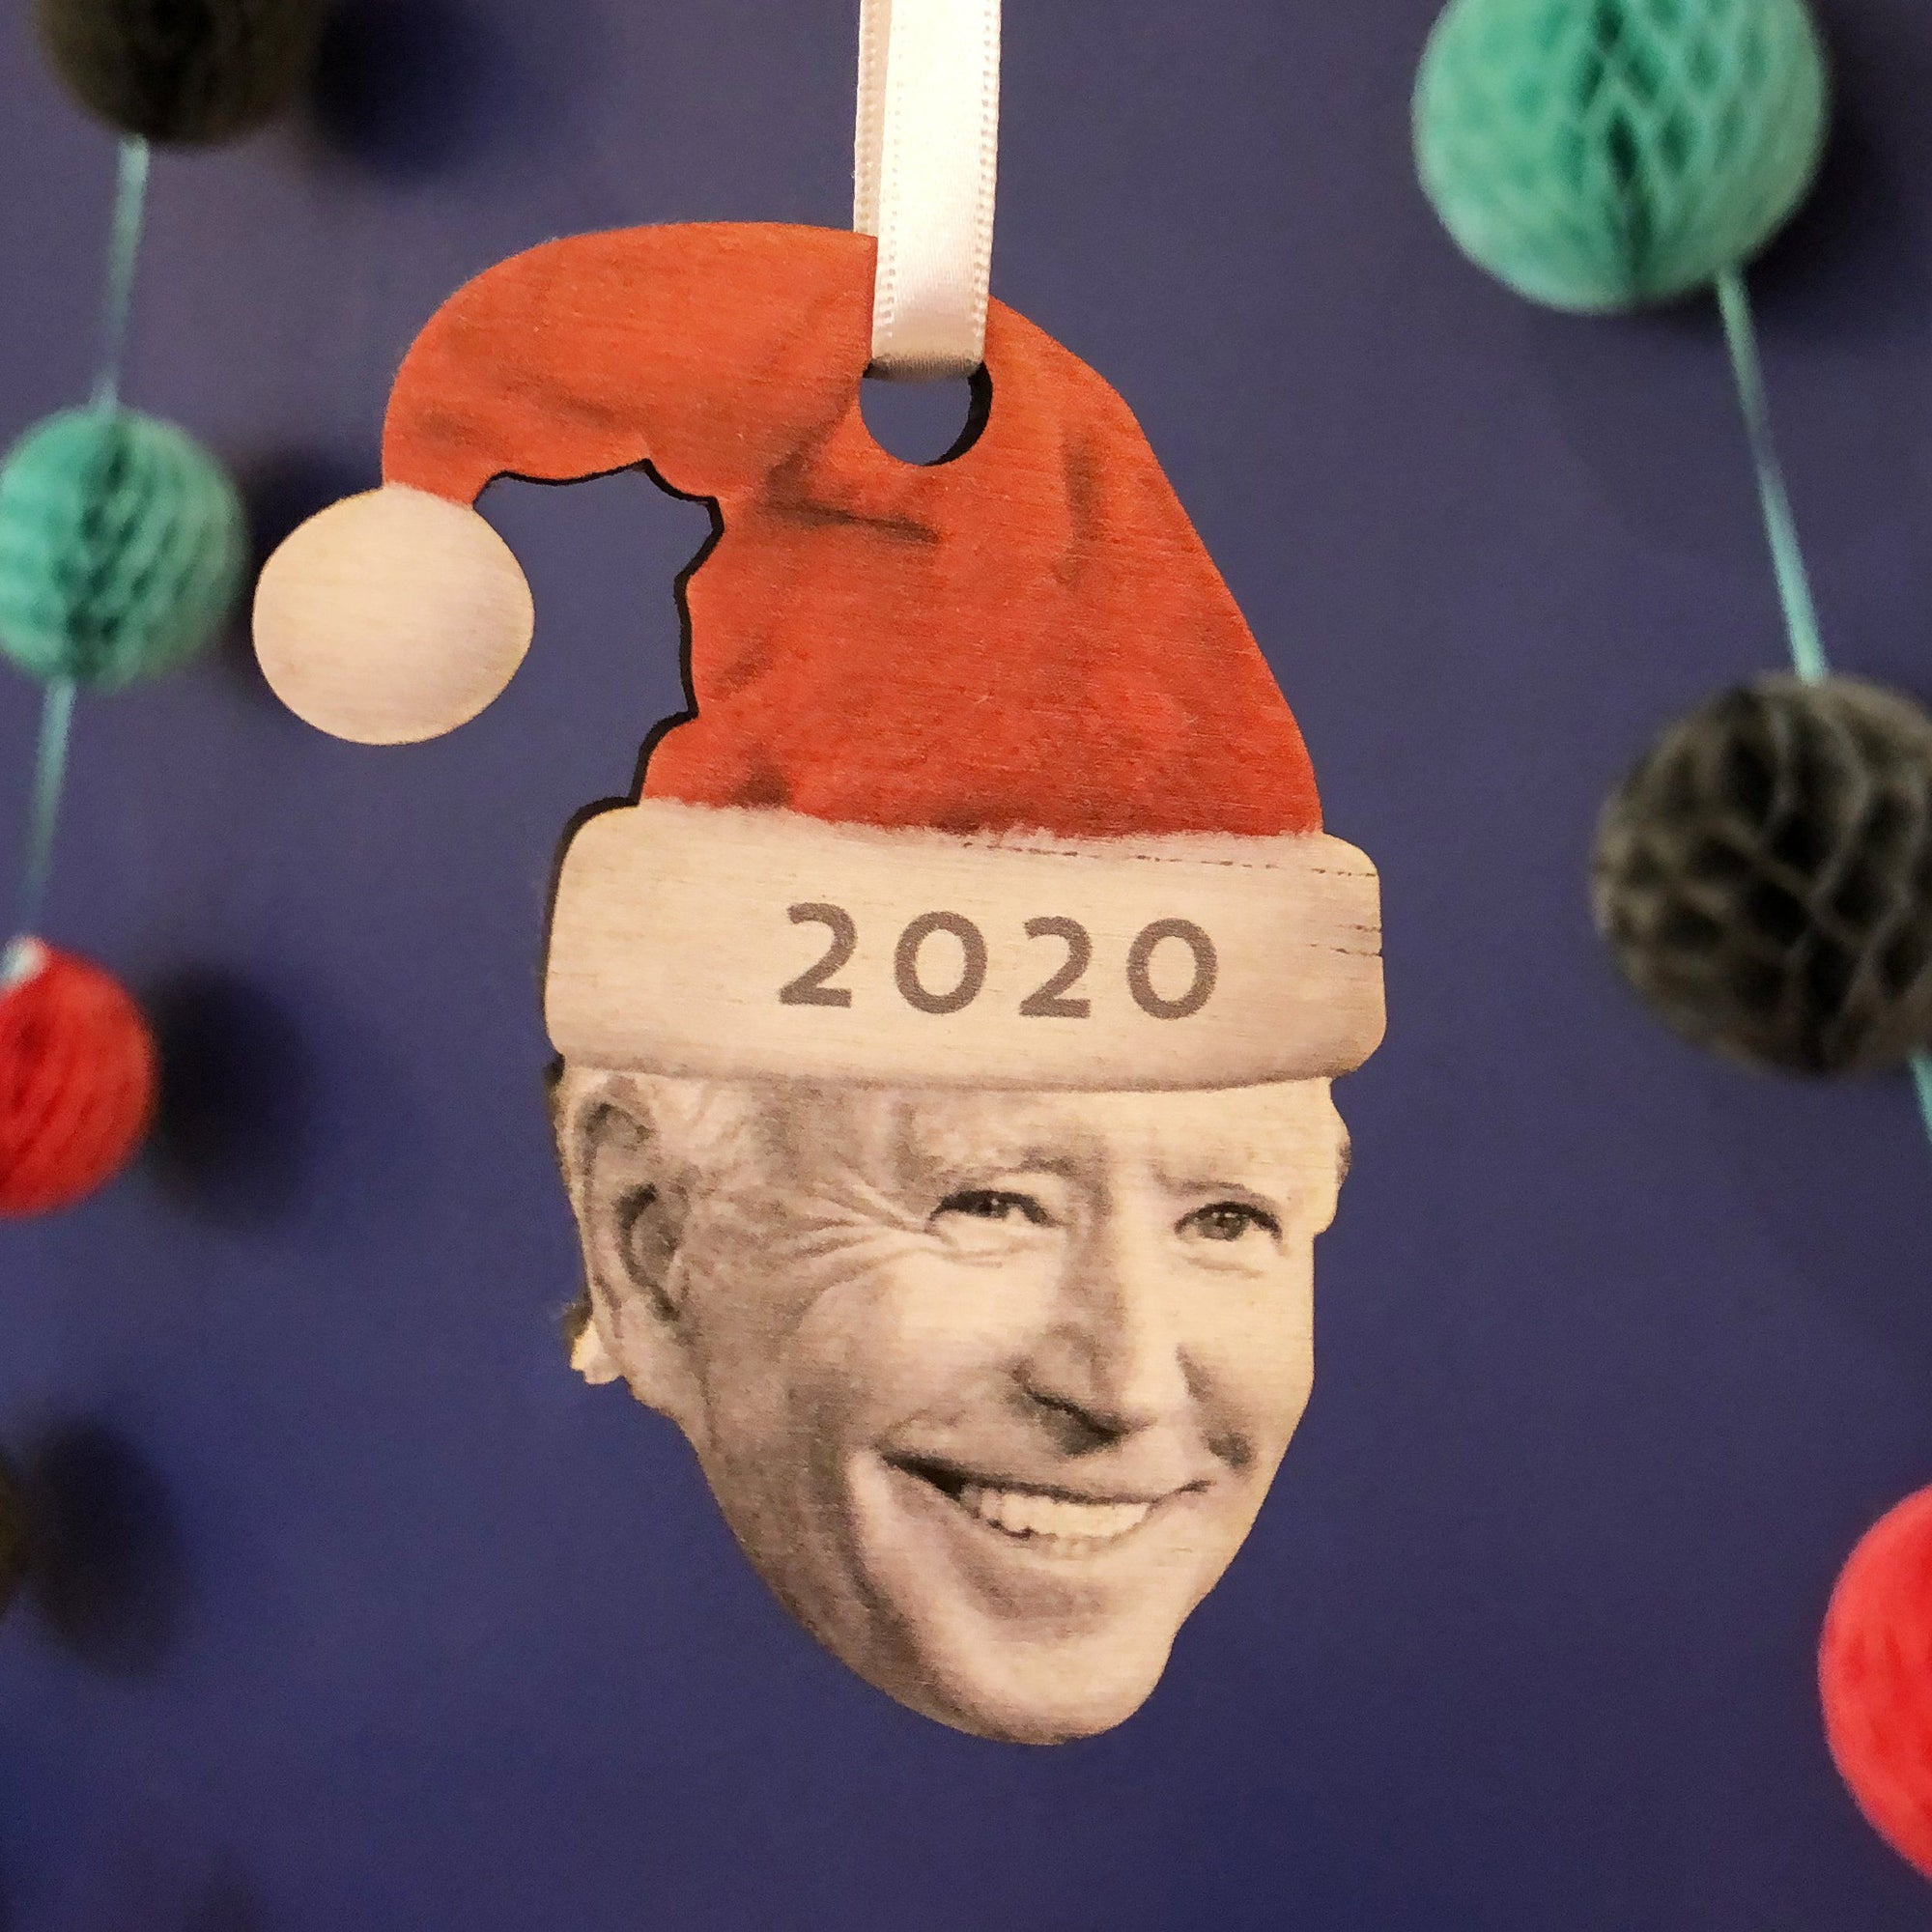 Joe Biden 2020 Christmas Tree Ornament